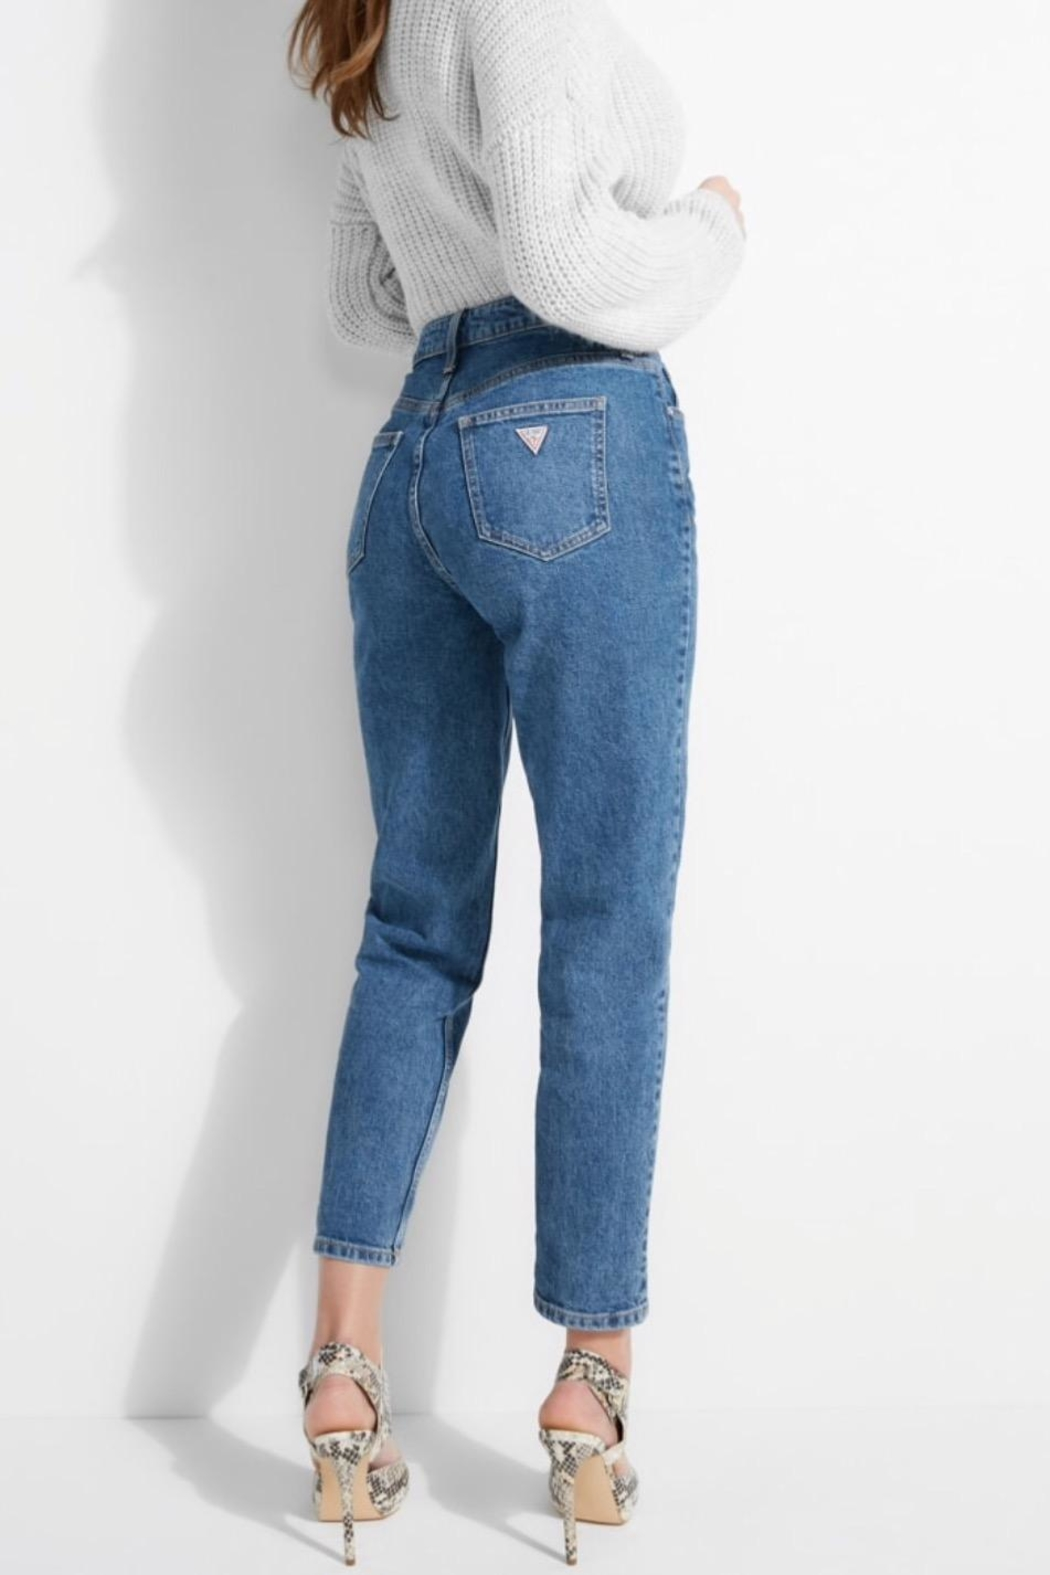 GUESS Jeans Super High Rise Mom Jeans - Back Cropped Image